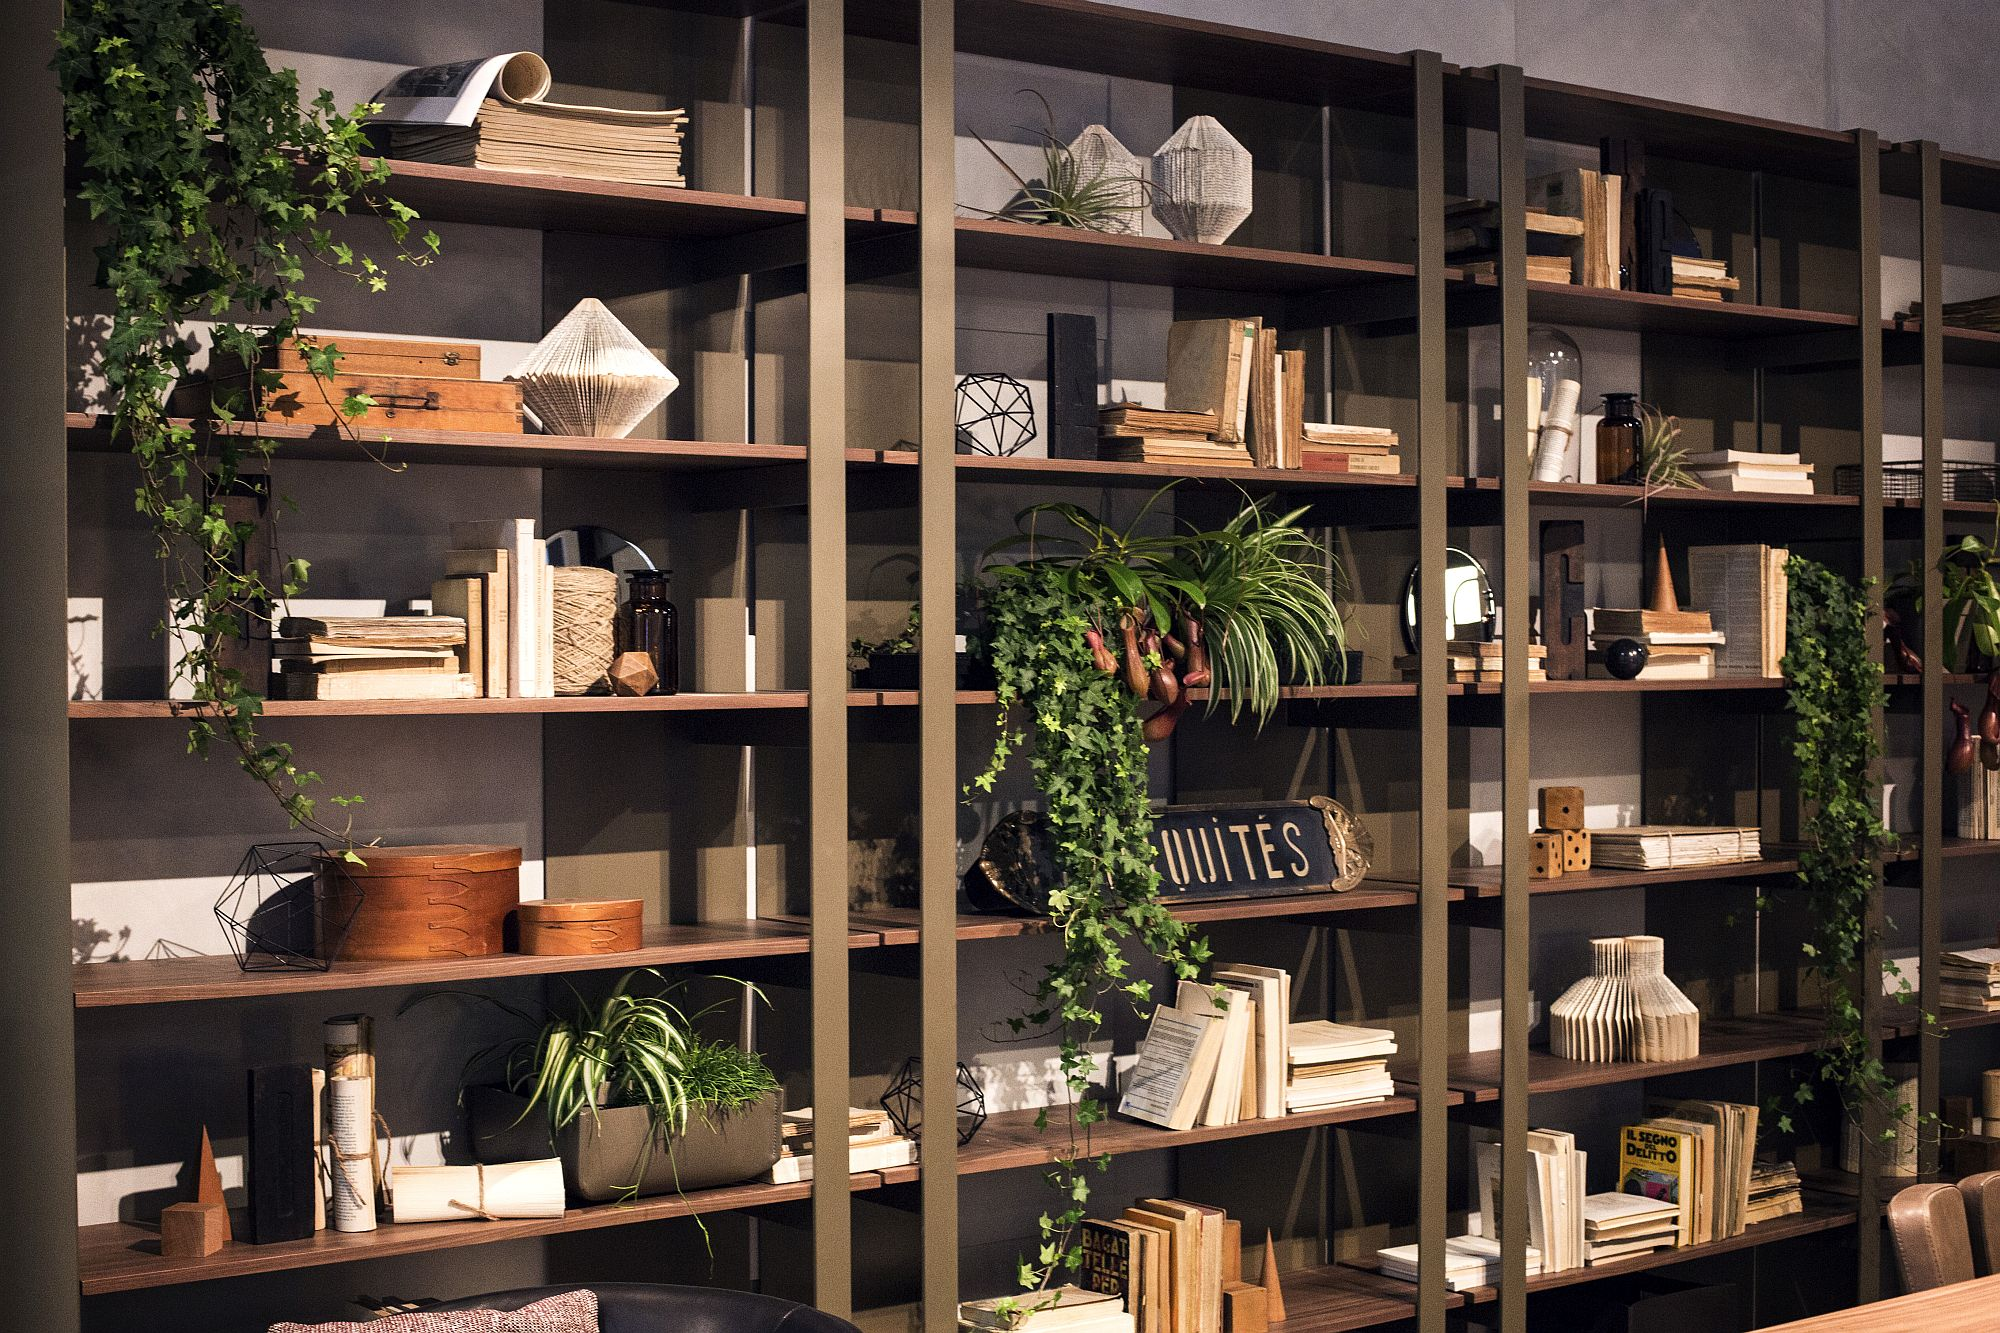 Wooden Shelving Units 11 Open Wooden Shelves Bringing Modularity And Decorating Ease